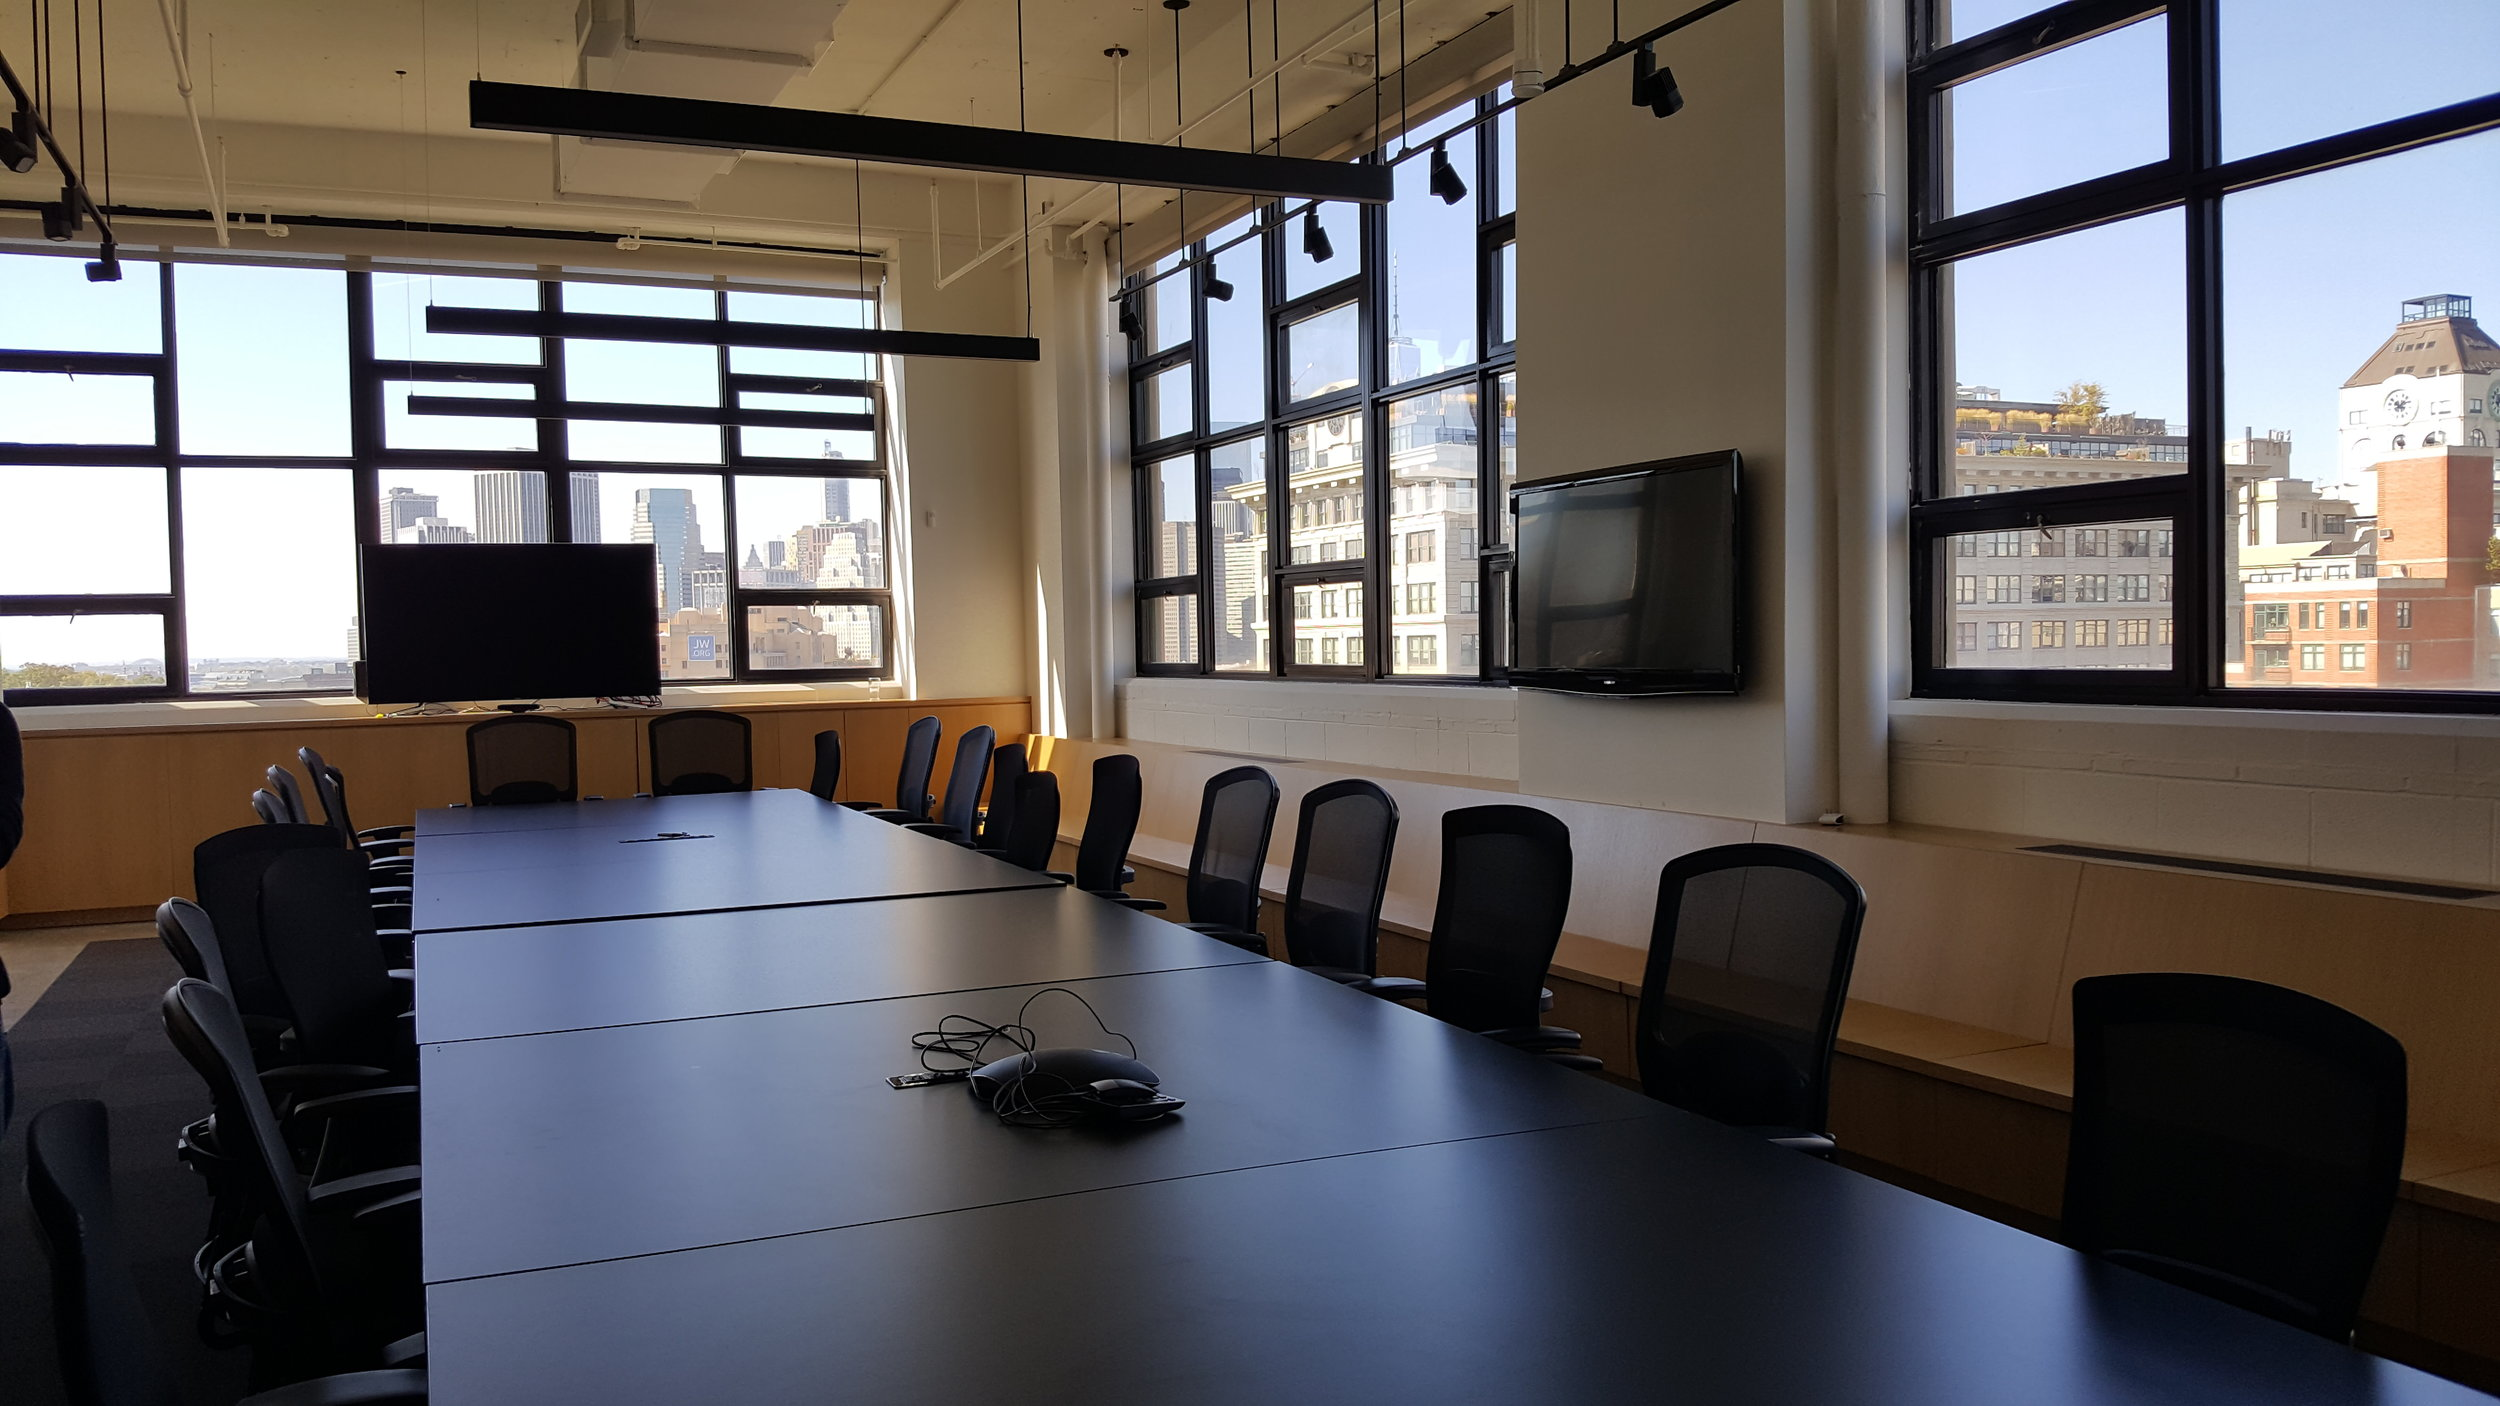 The largest of the private team spaces is equipped with lightweight tables that can be easily moved to create a different setting. The fabulous city views stay no matter what.